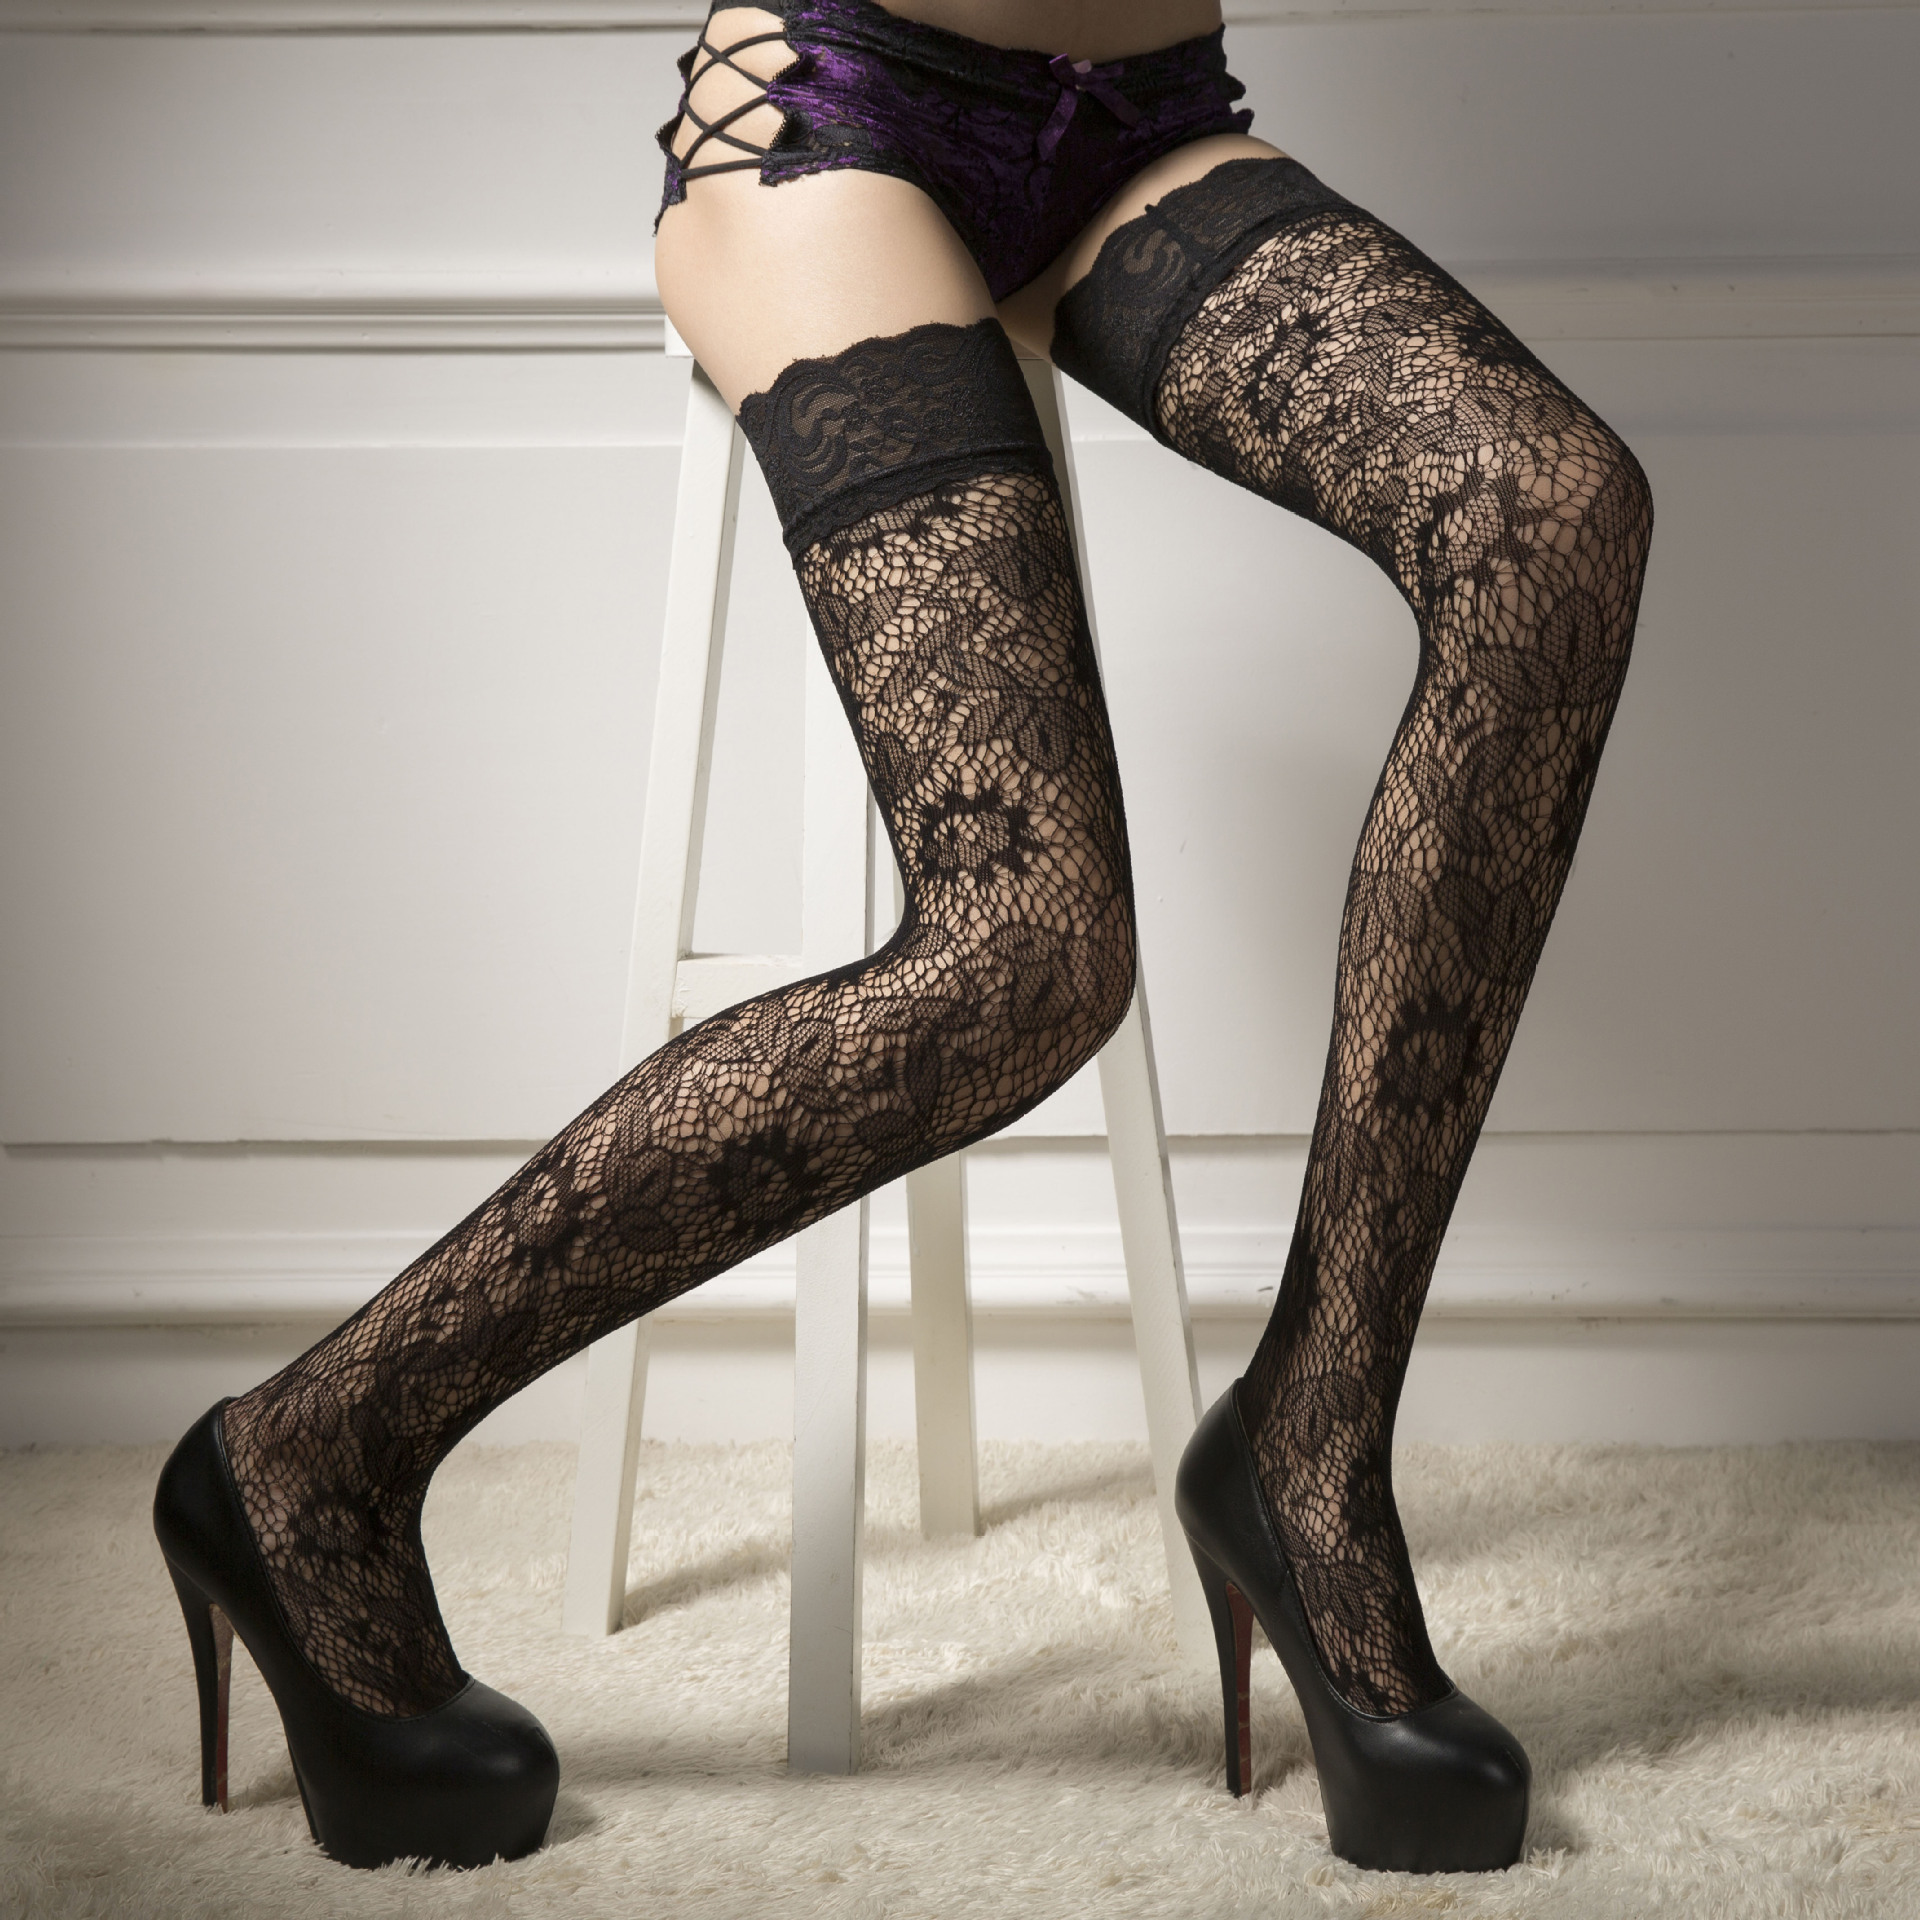 Newest Fashion Sexy Ladies Women Sheer Lace Top Stay Up Thigh High Hold-Ups Stockings Pantyhose